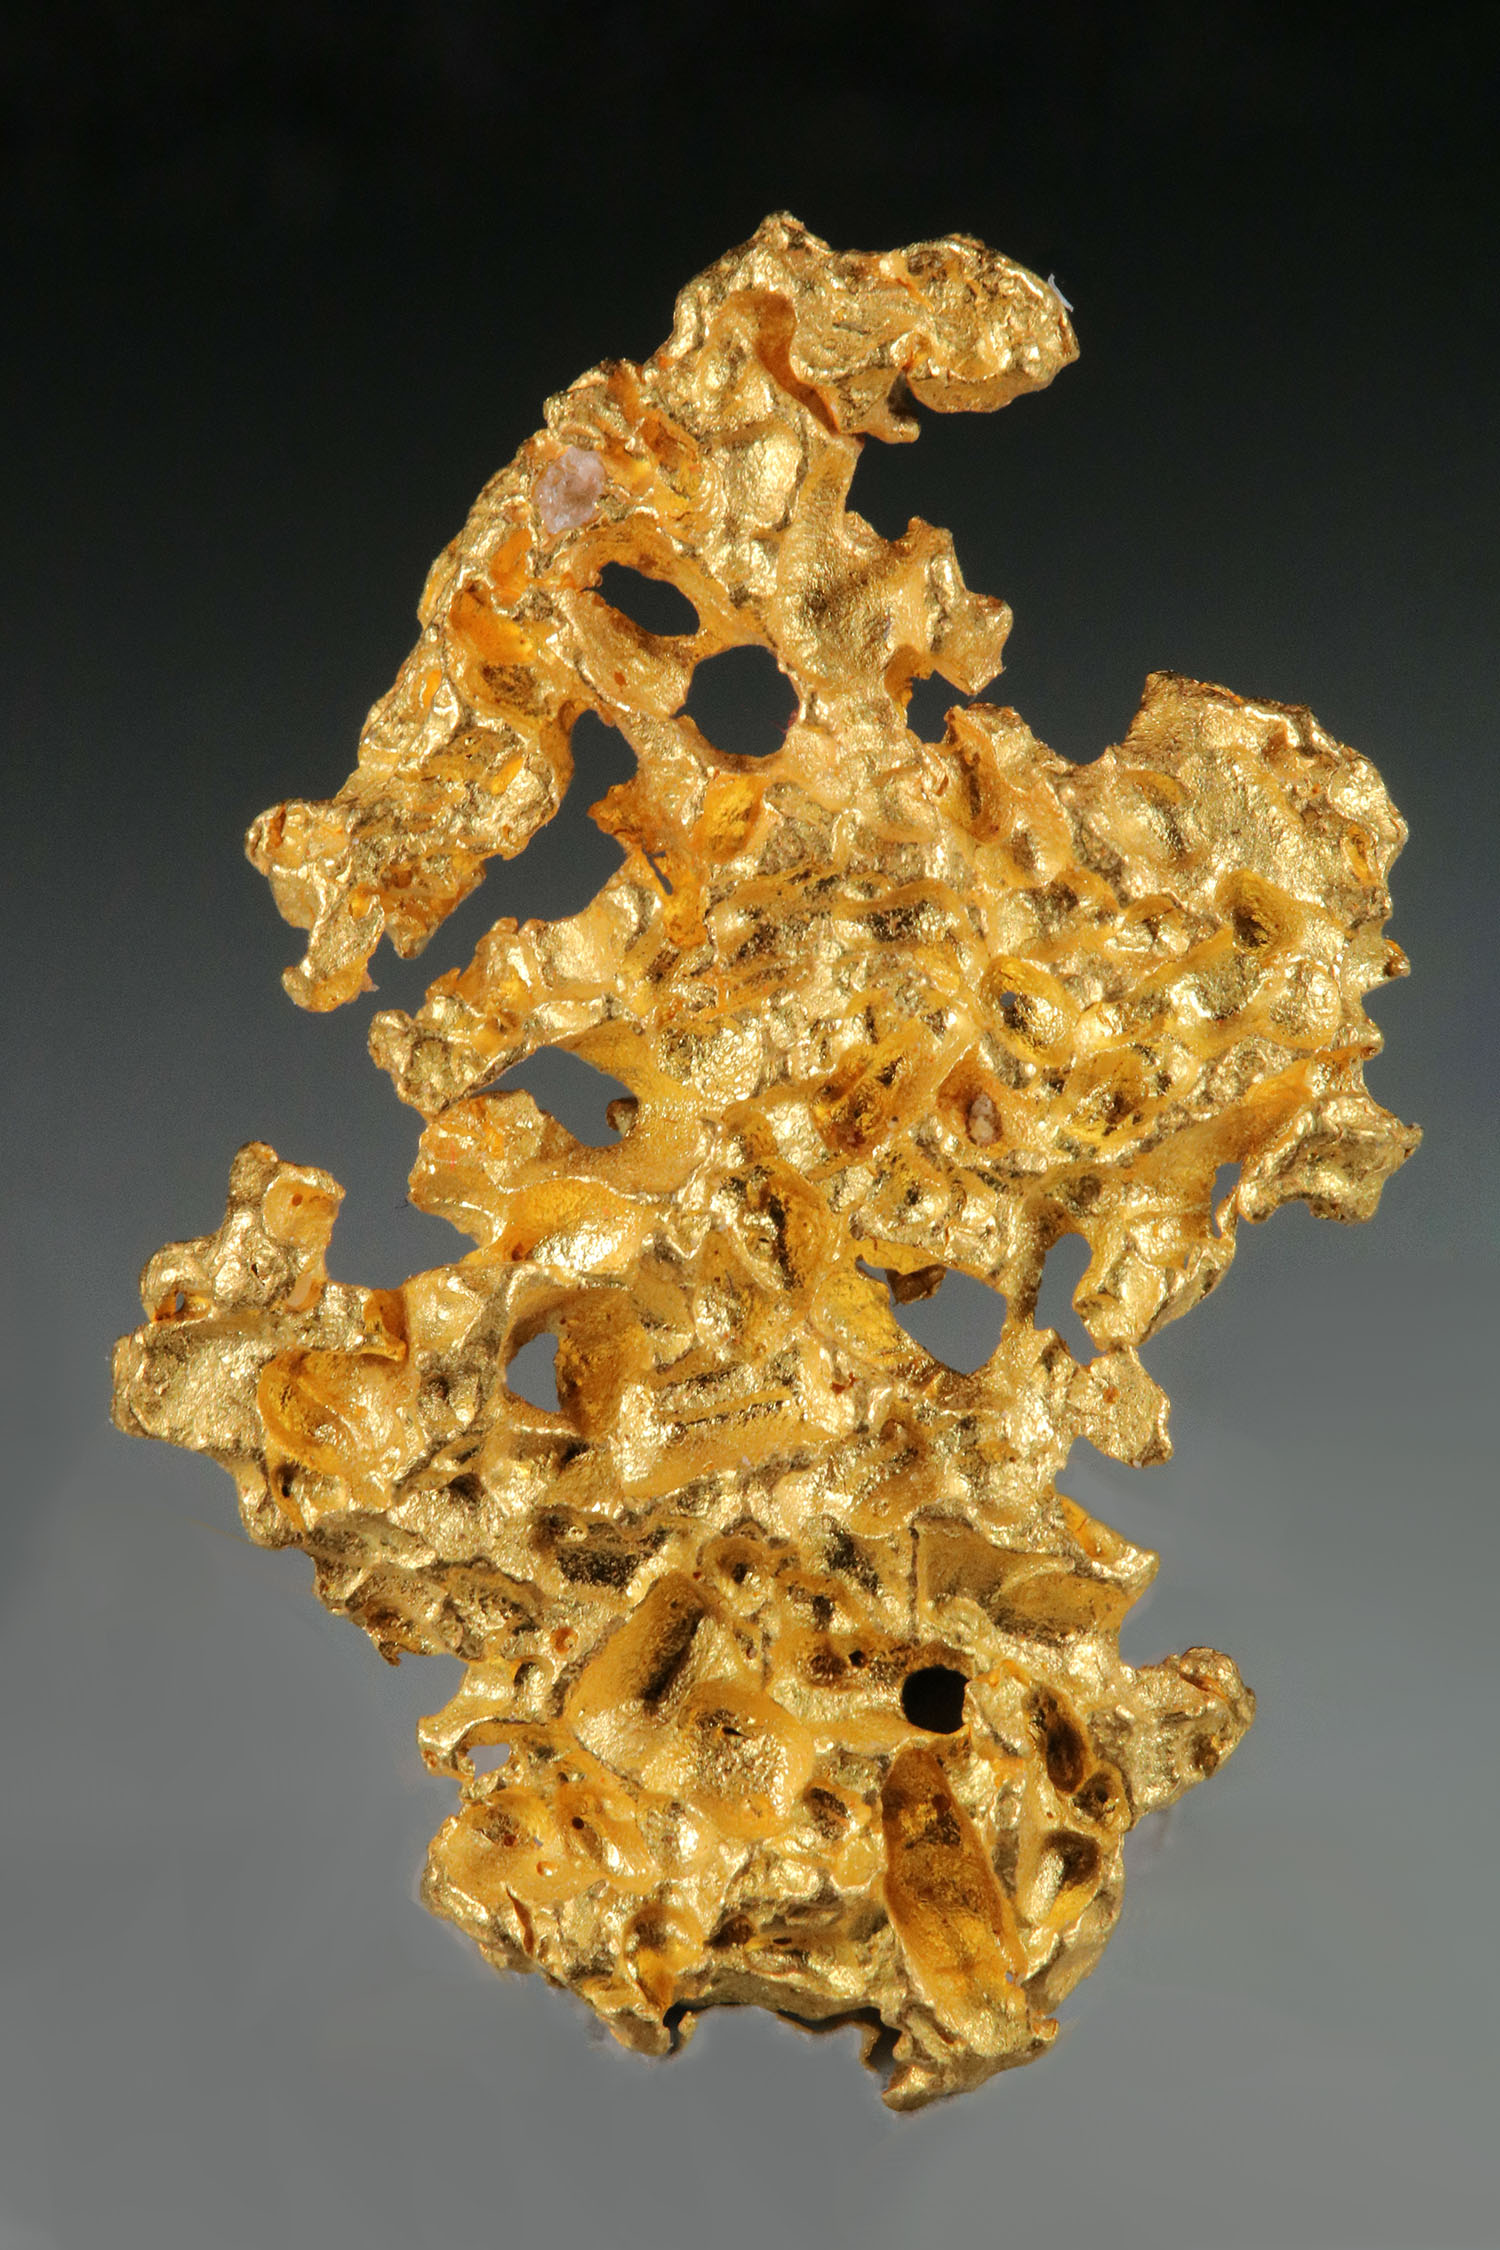 Absolutely Gorgeous Crystalline Gold Nugget from Australia